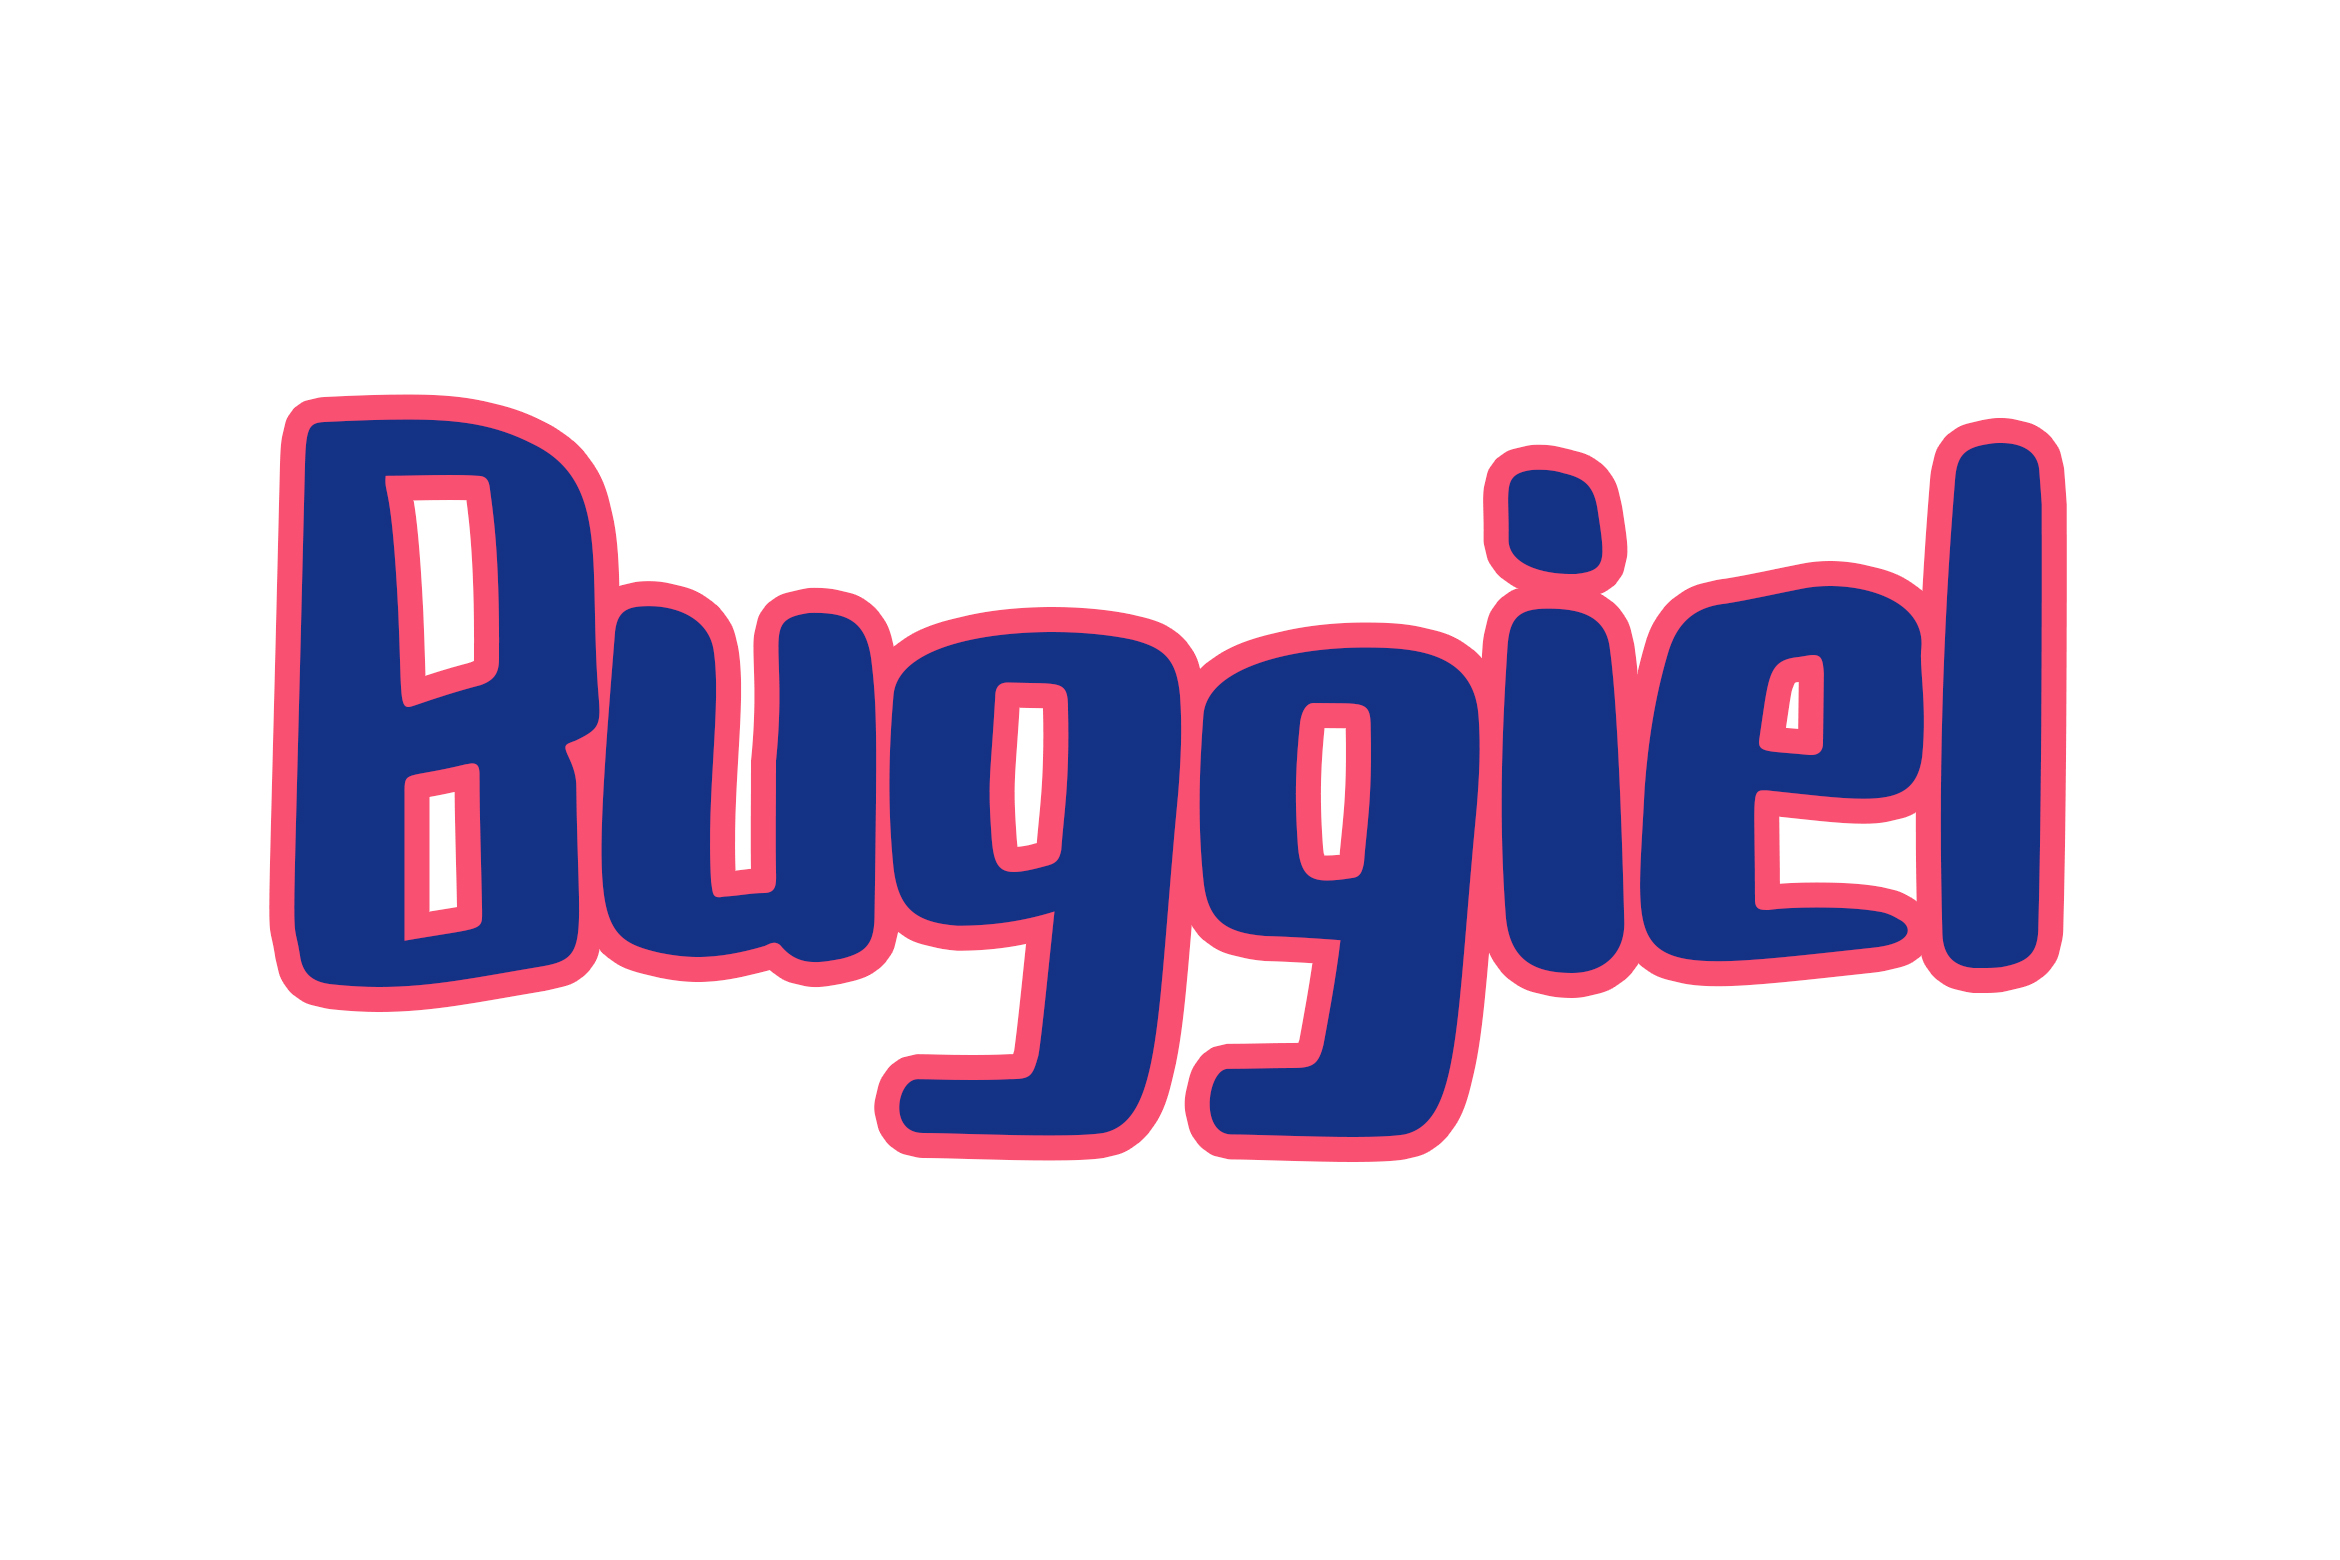 Buggiel - Bold and Fun Font example image 1